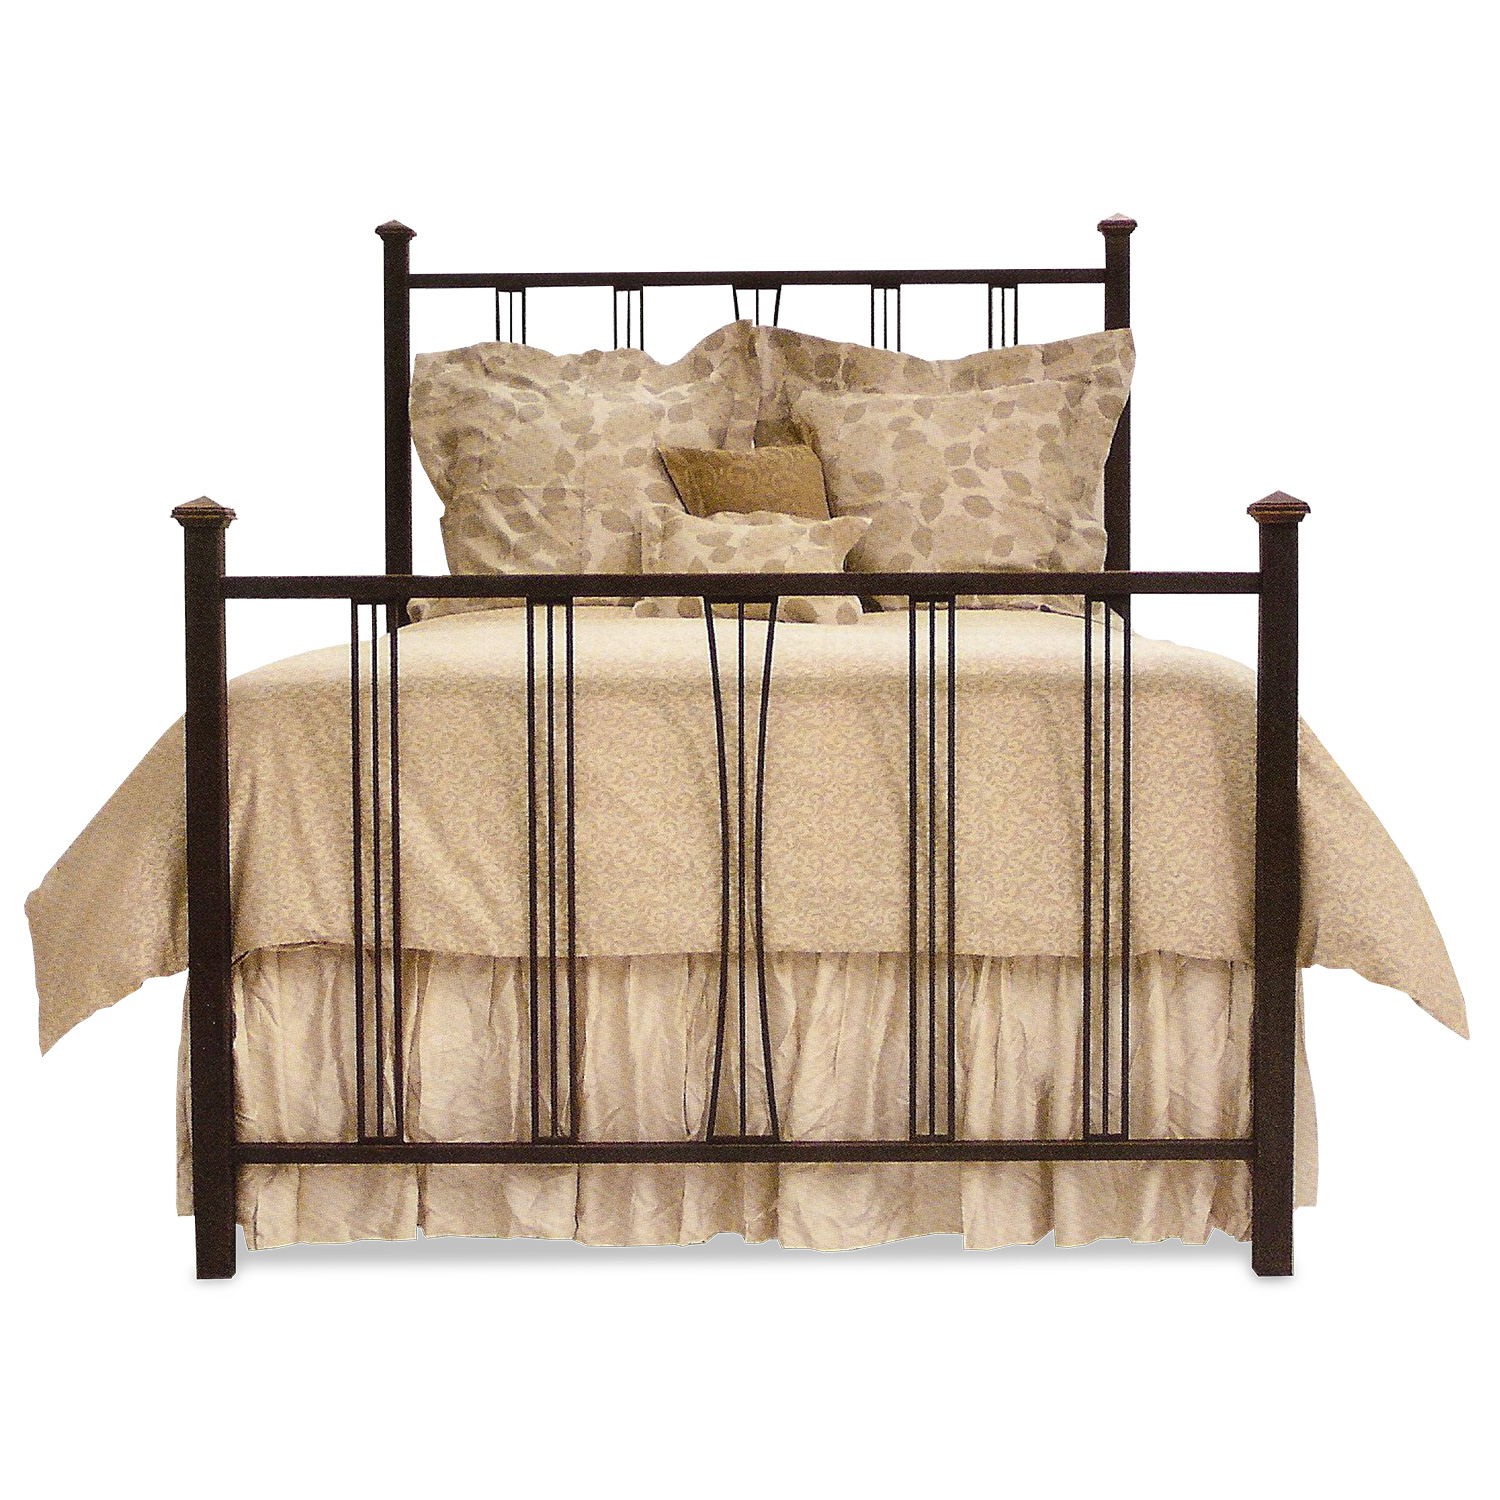 331 Arts and Crafts Metal Bed